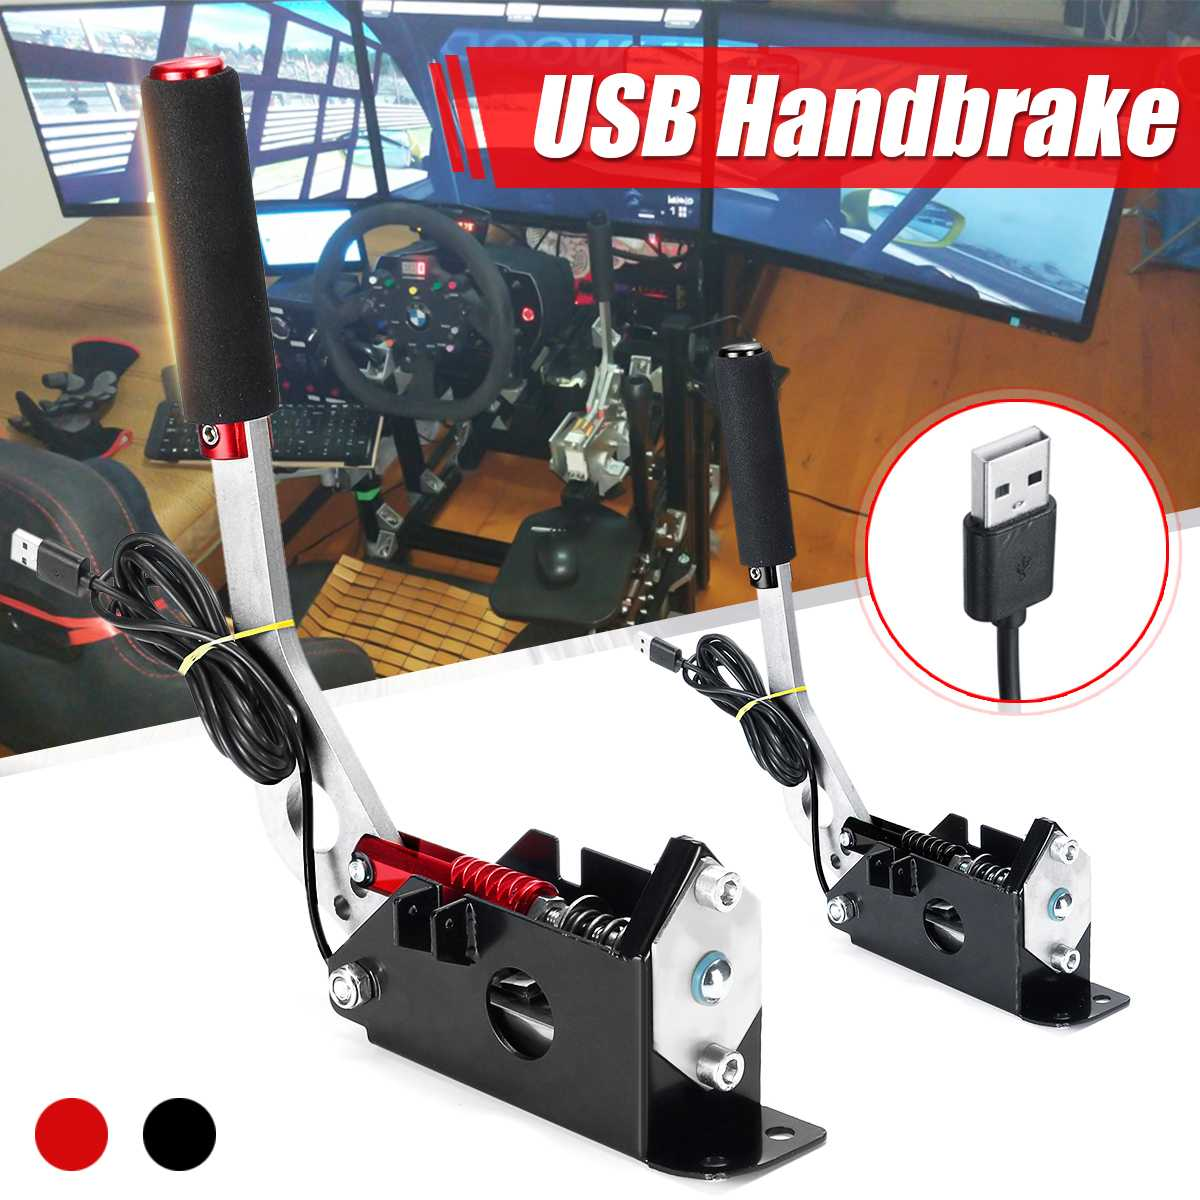 USB Handbrake Clamp PC Windows For Sim Racing Game For Logitech G25 G27 G29 T500 T300 FANATECOSW For LFS DIRT RALLY